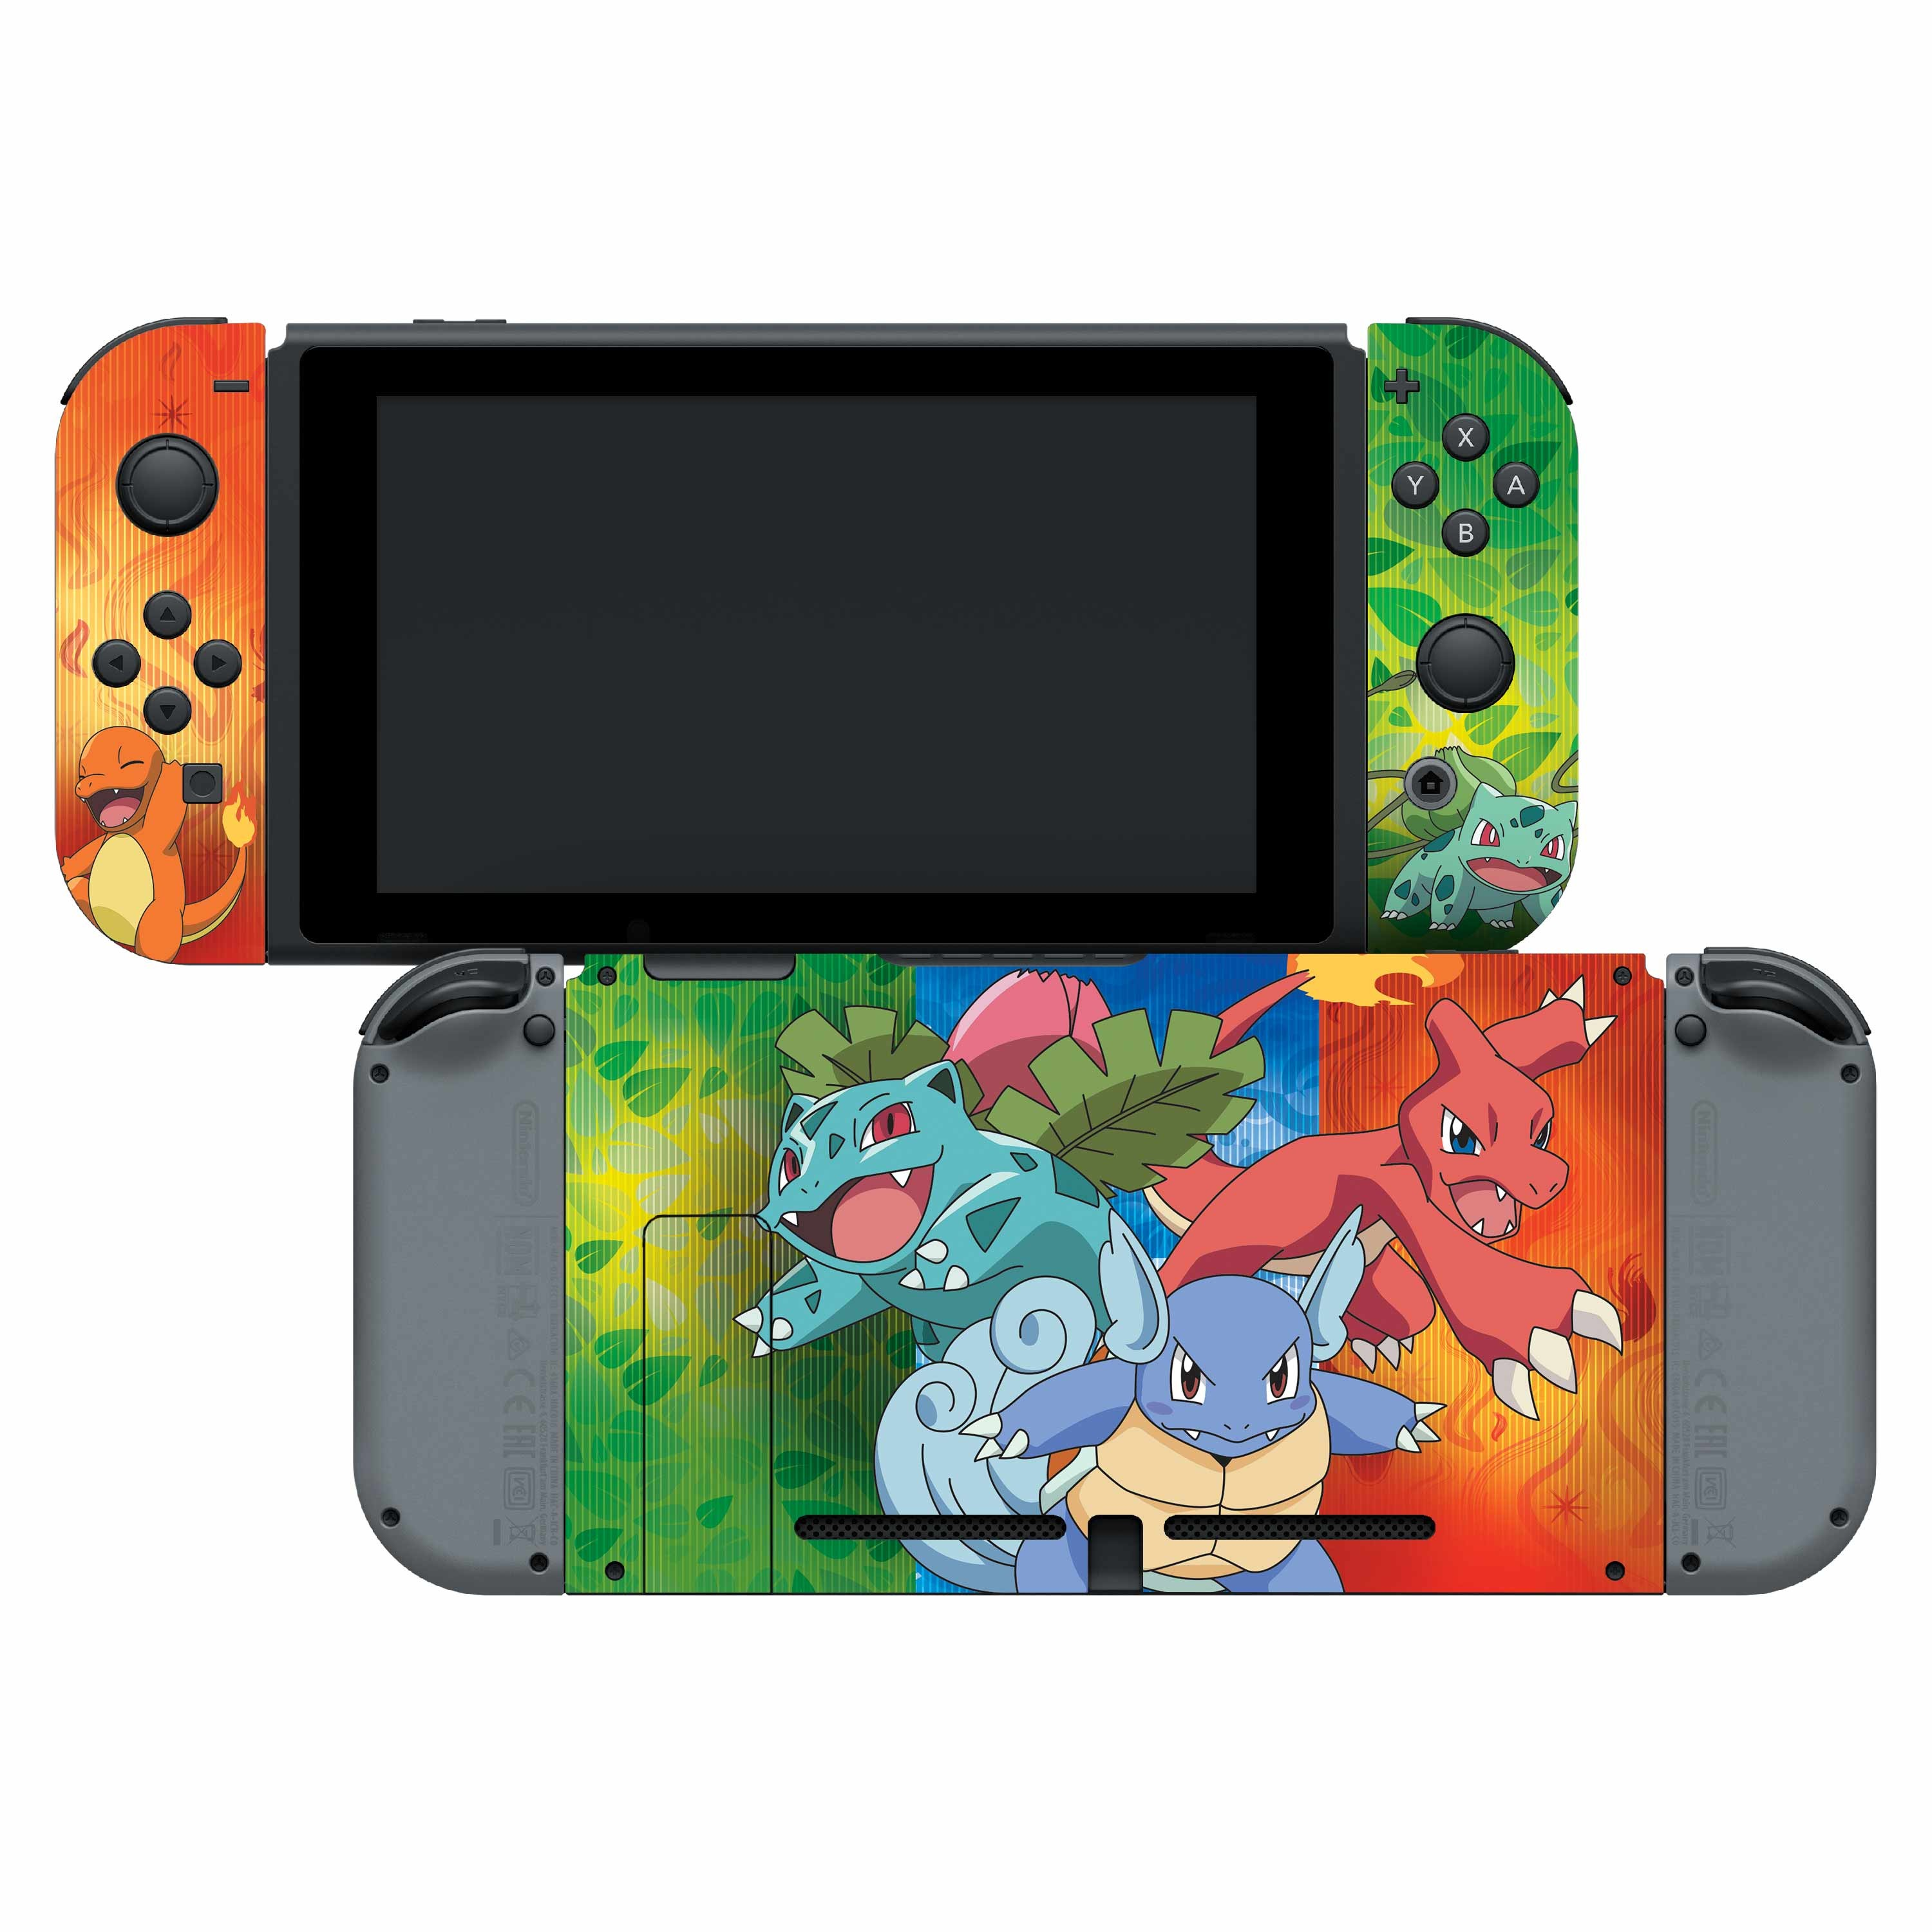 Nintendo Switch Skin & Screen Protector Set with a Pokemon Kanto Evolutions Design, Image 1